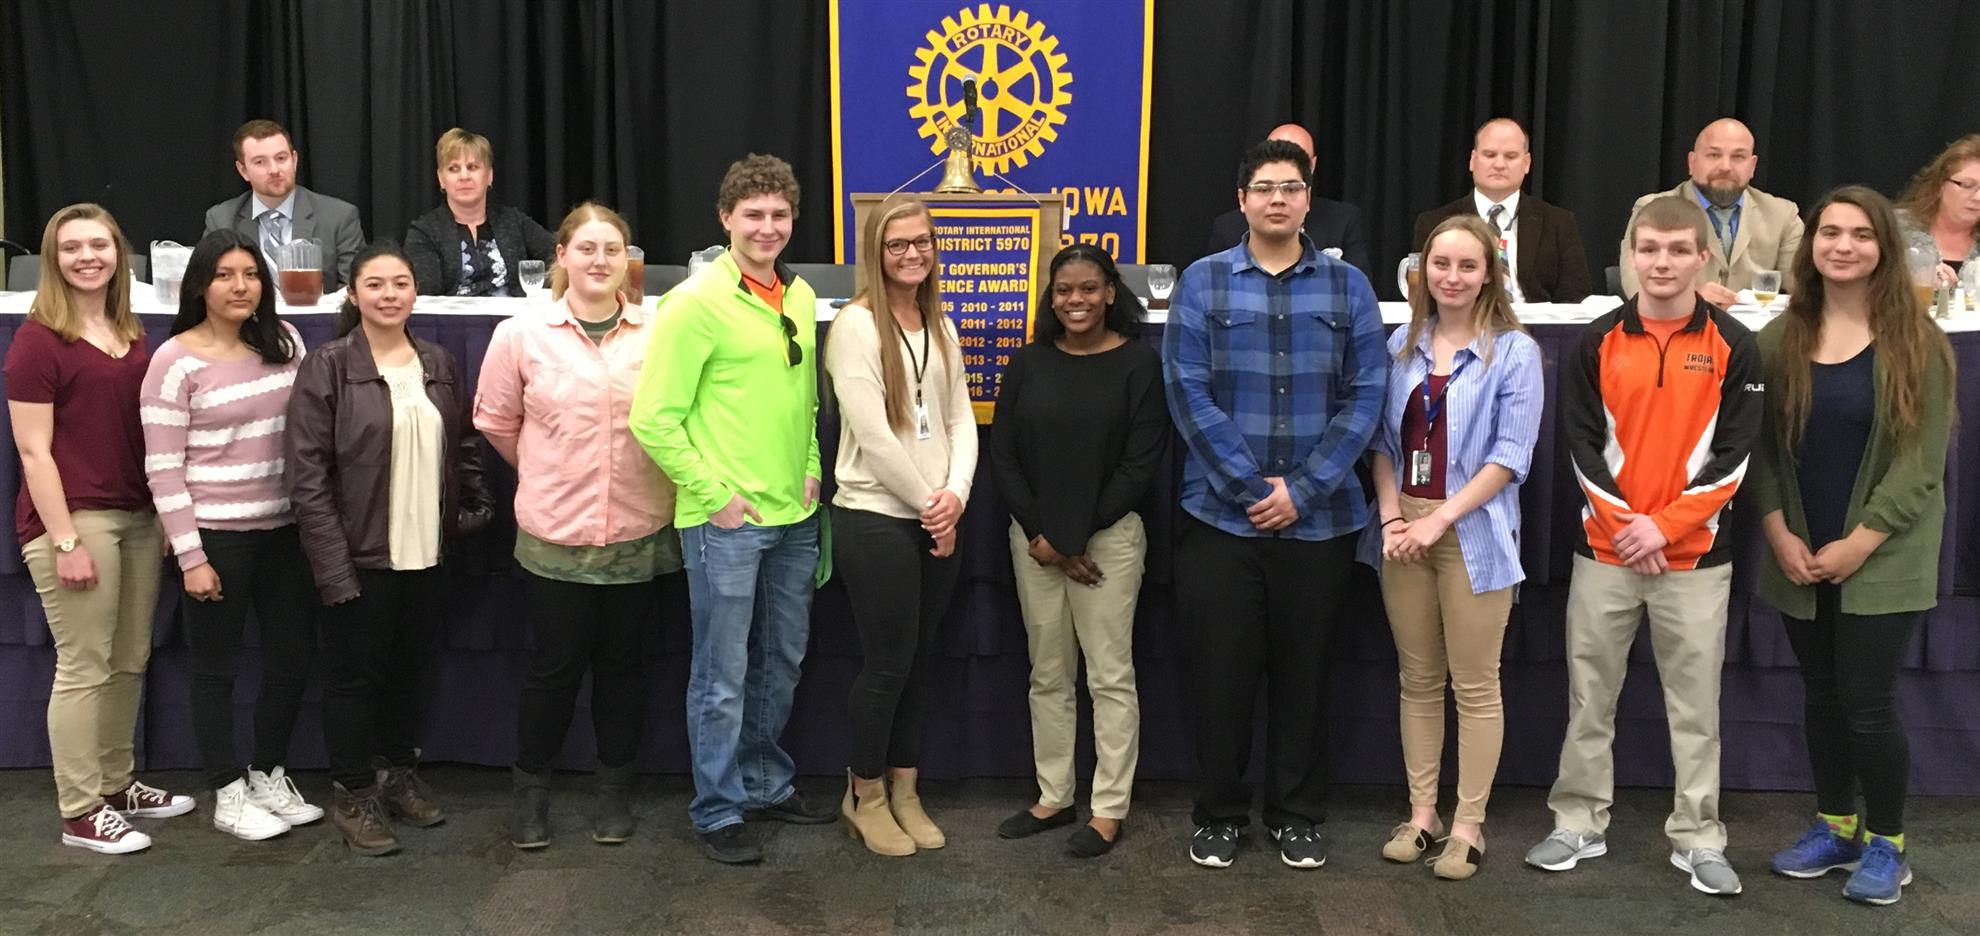 2018 Student Scholars Luncheon Rotary Club Of Waterloo 40:59 b j recommended for you. 2018 student scholars luncheon rotary